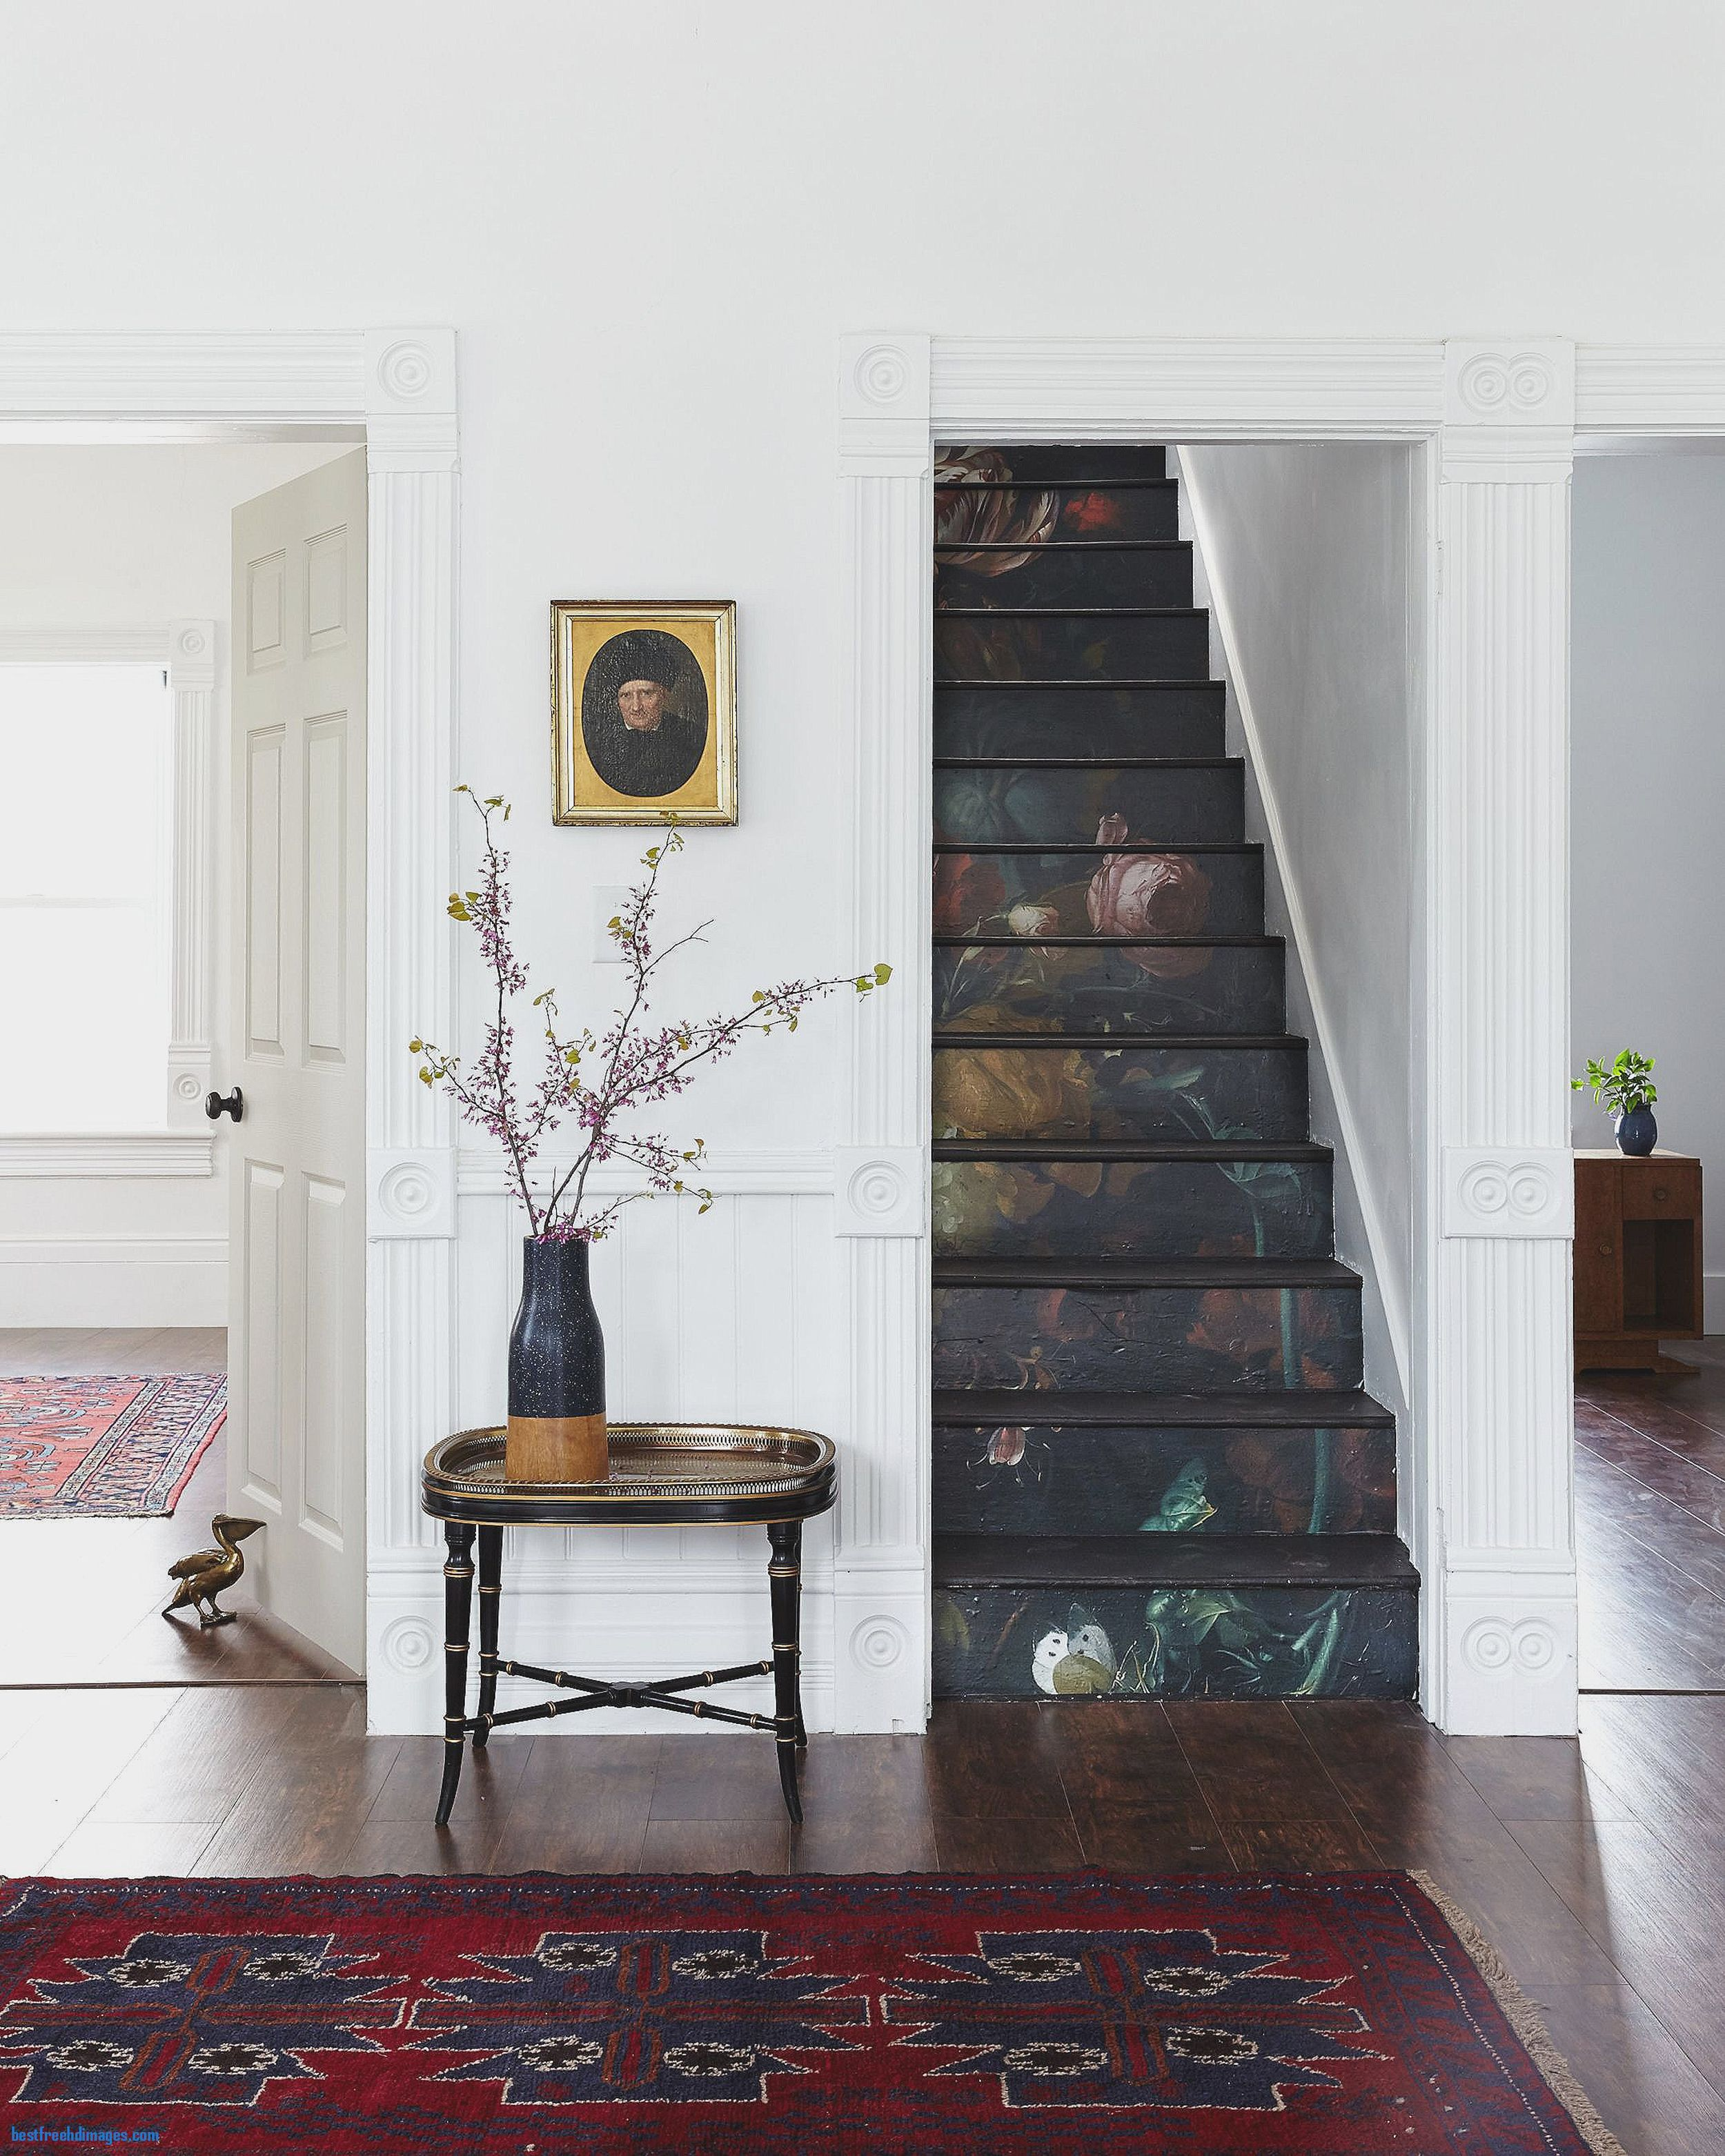 Pin by Fiona Albó on DECO/HOME/DESIGN   Pinterest   Modern victorian ...